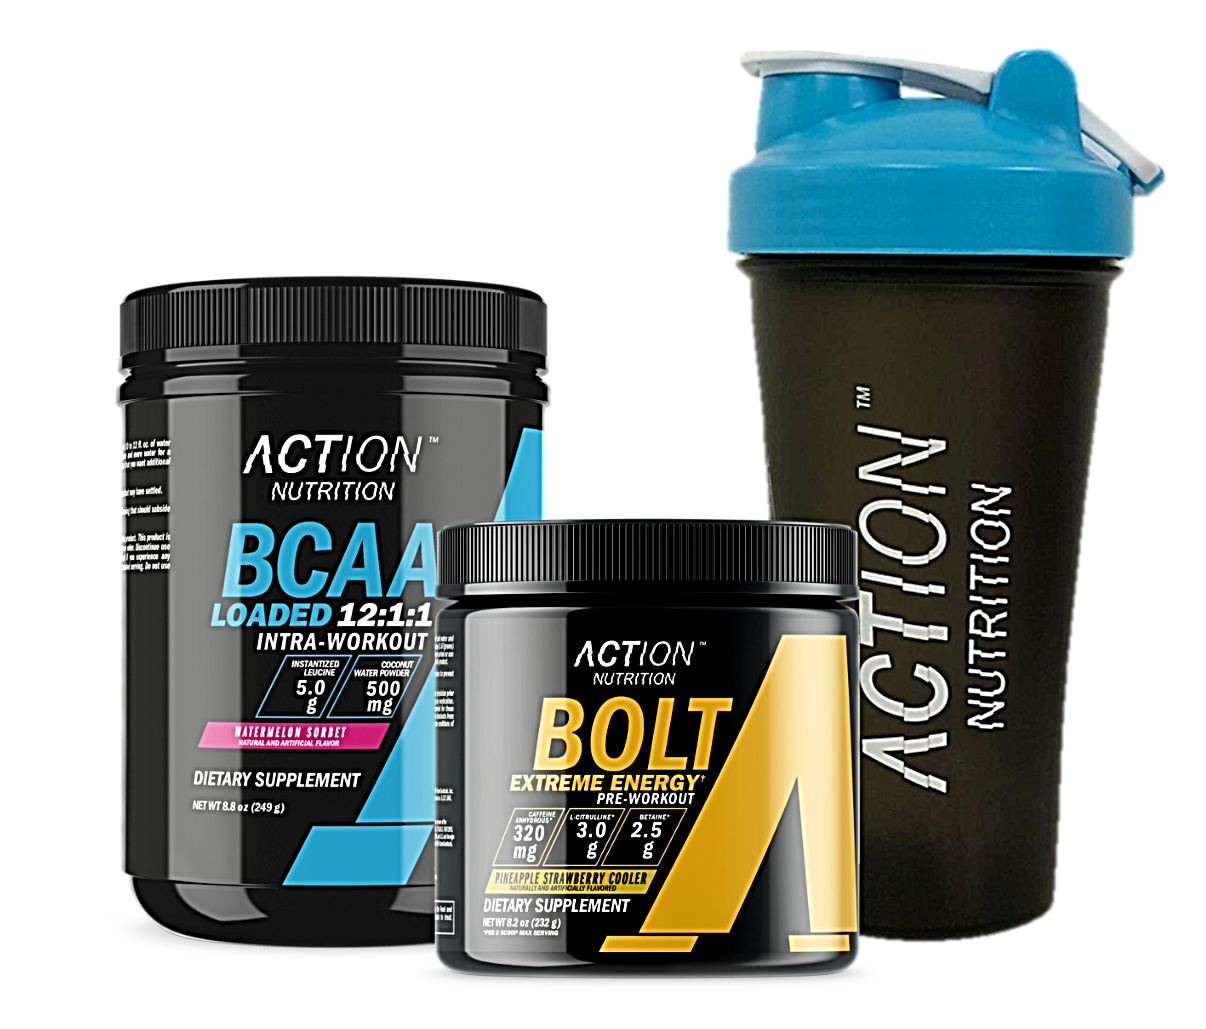 Action Packed Workout Bundle - BOLT, BCAA Loaded, and a FREE Shaker Cup!